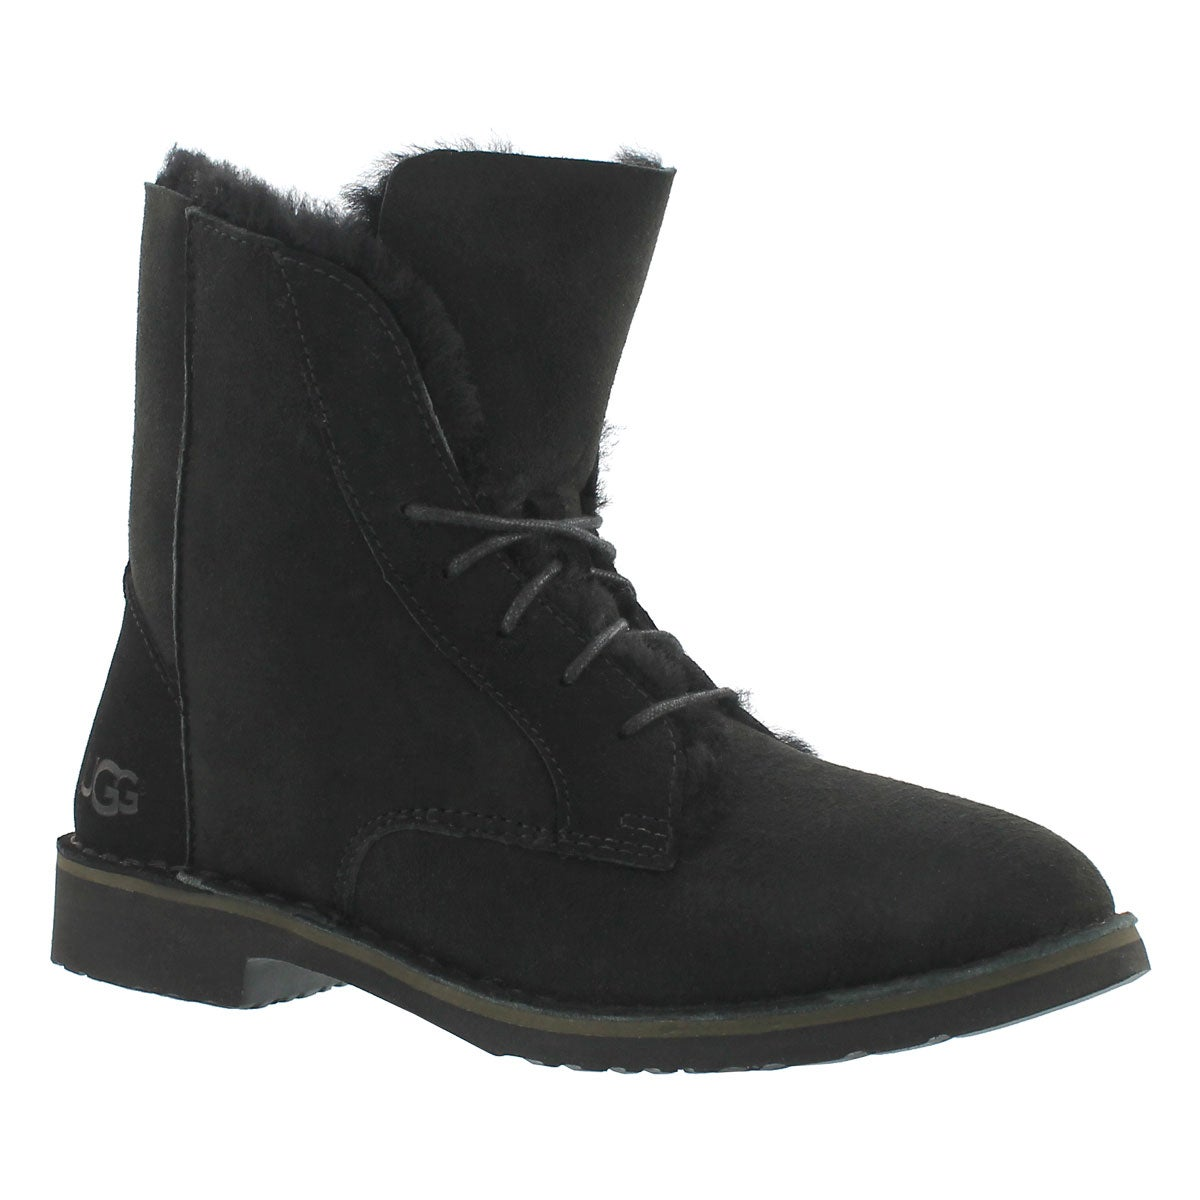 Lds Quincy black lace up sheepskin boot